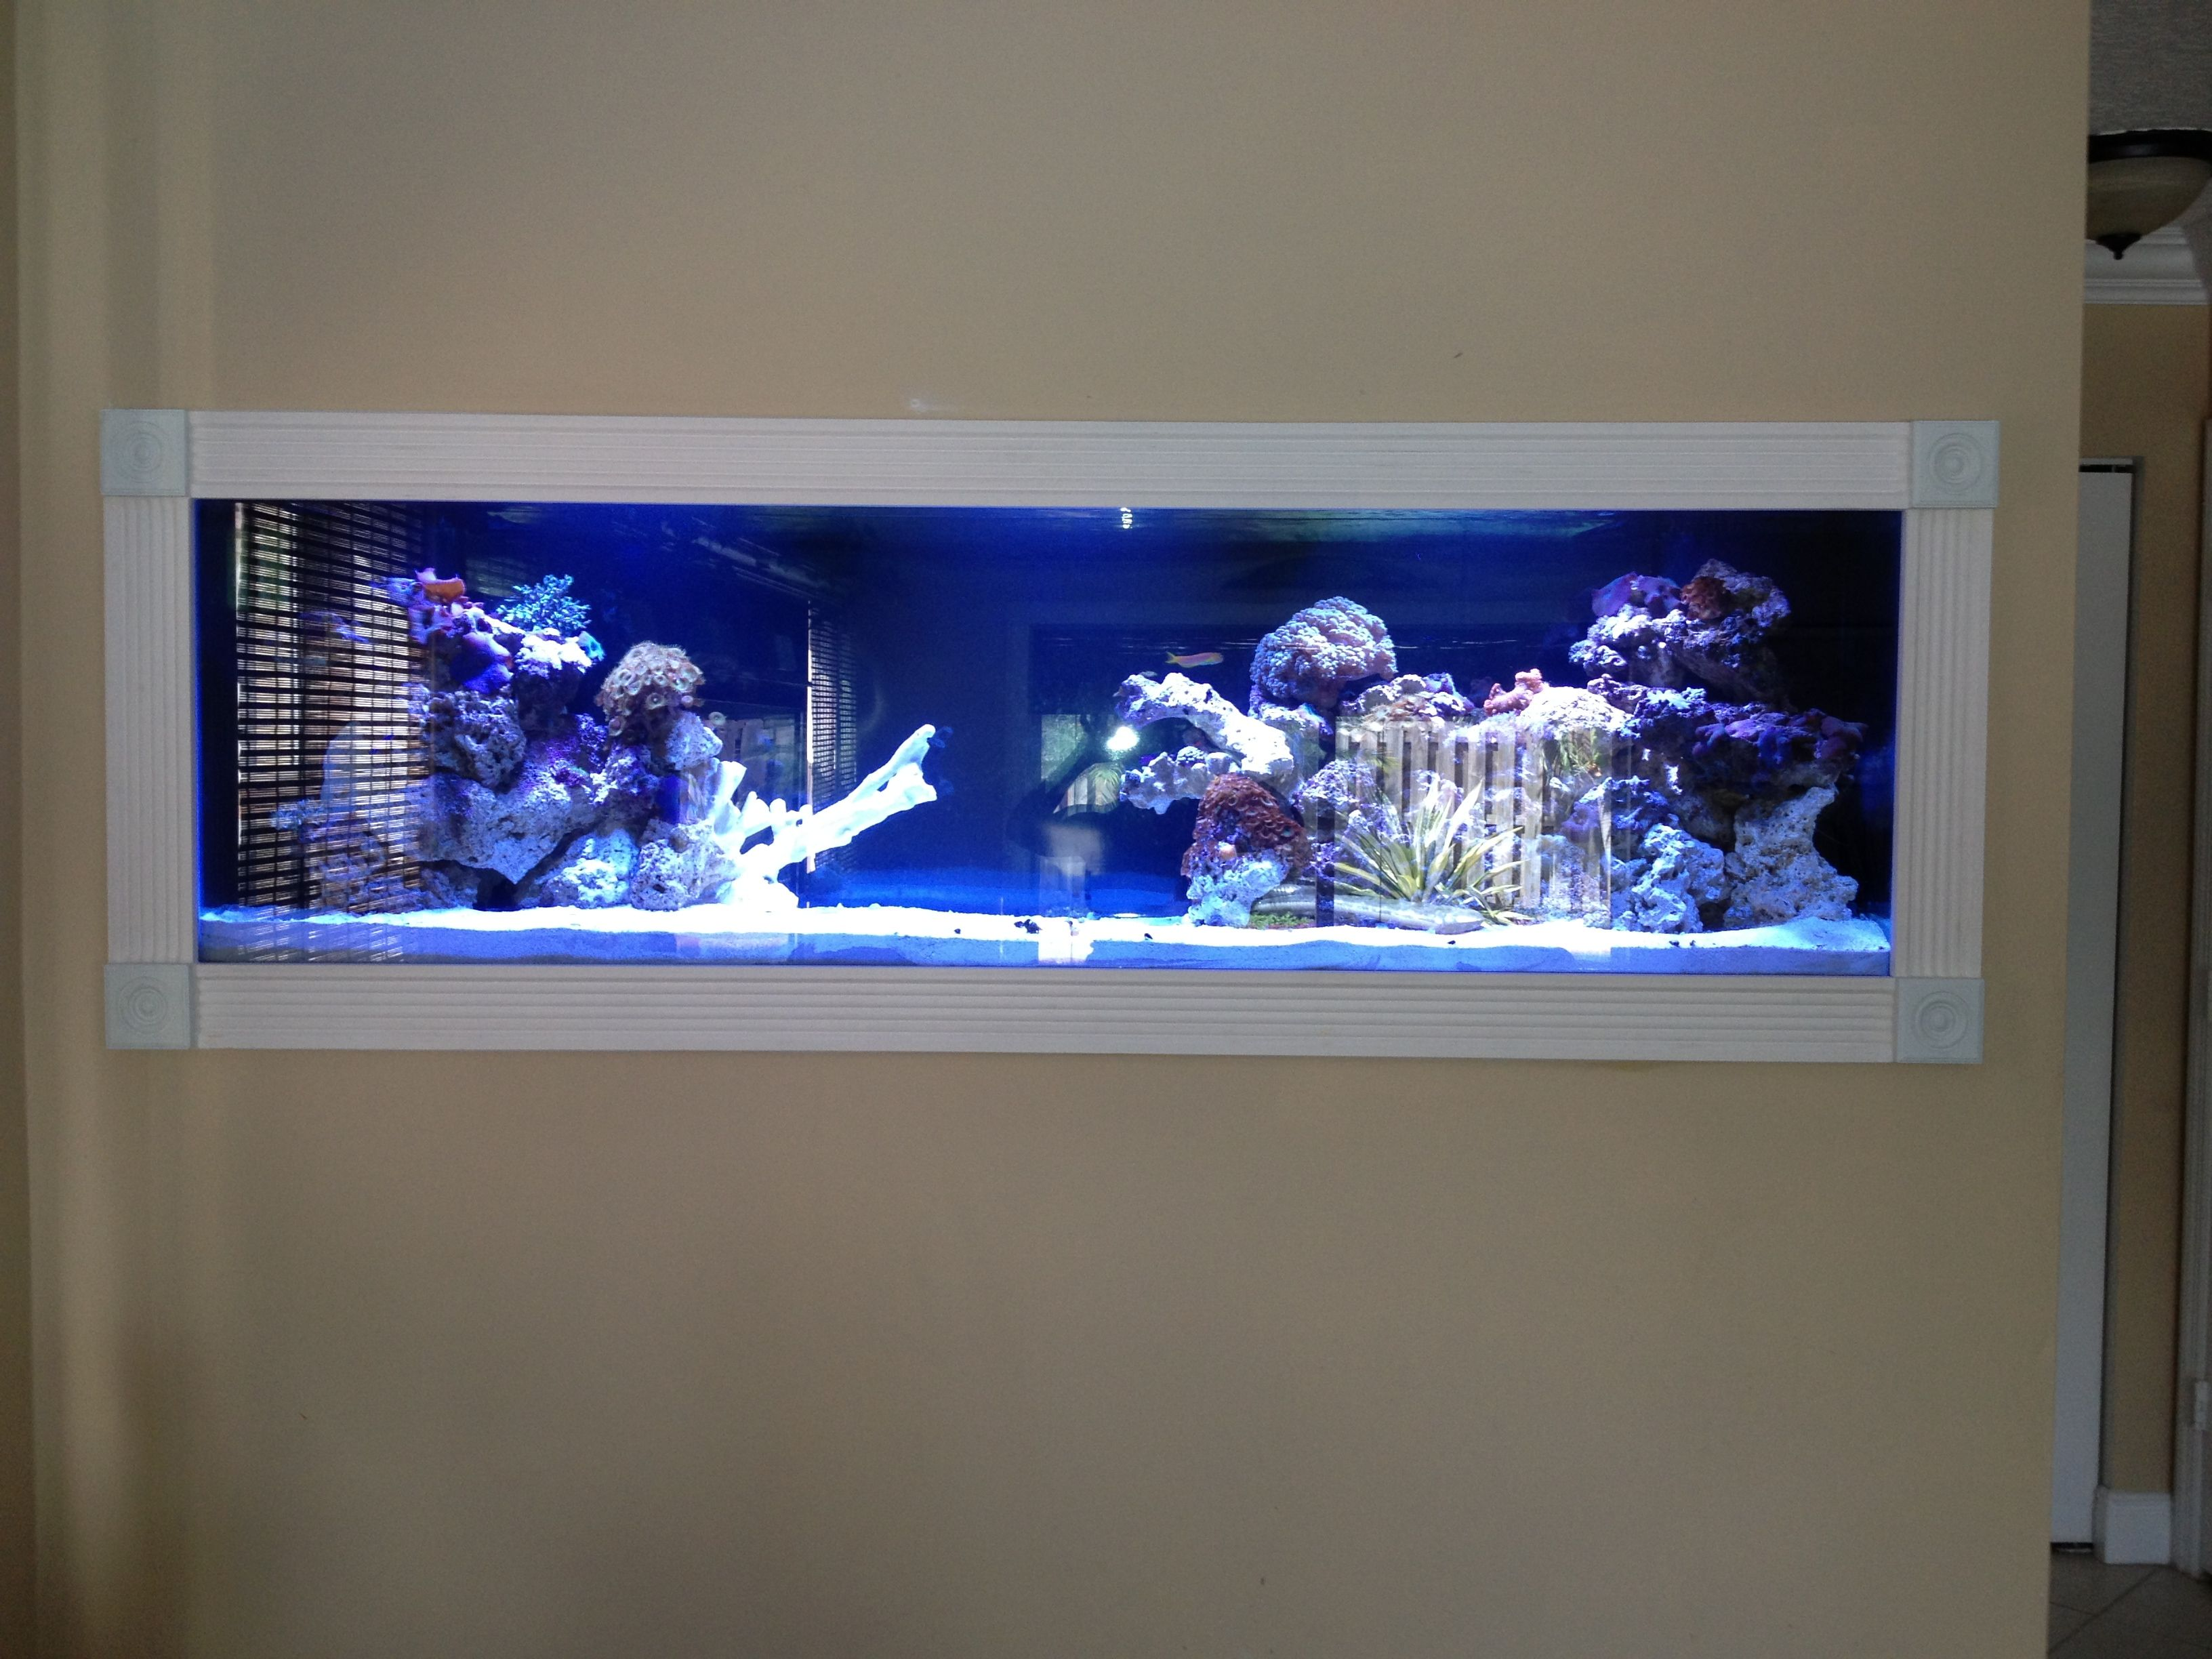 Fish tank in the wall i 39 m gonna make this place your for Fish tank in wall